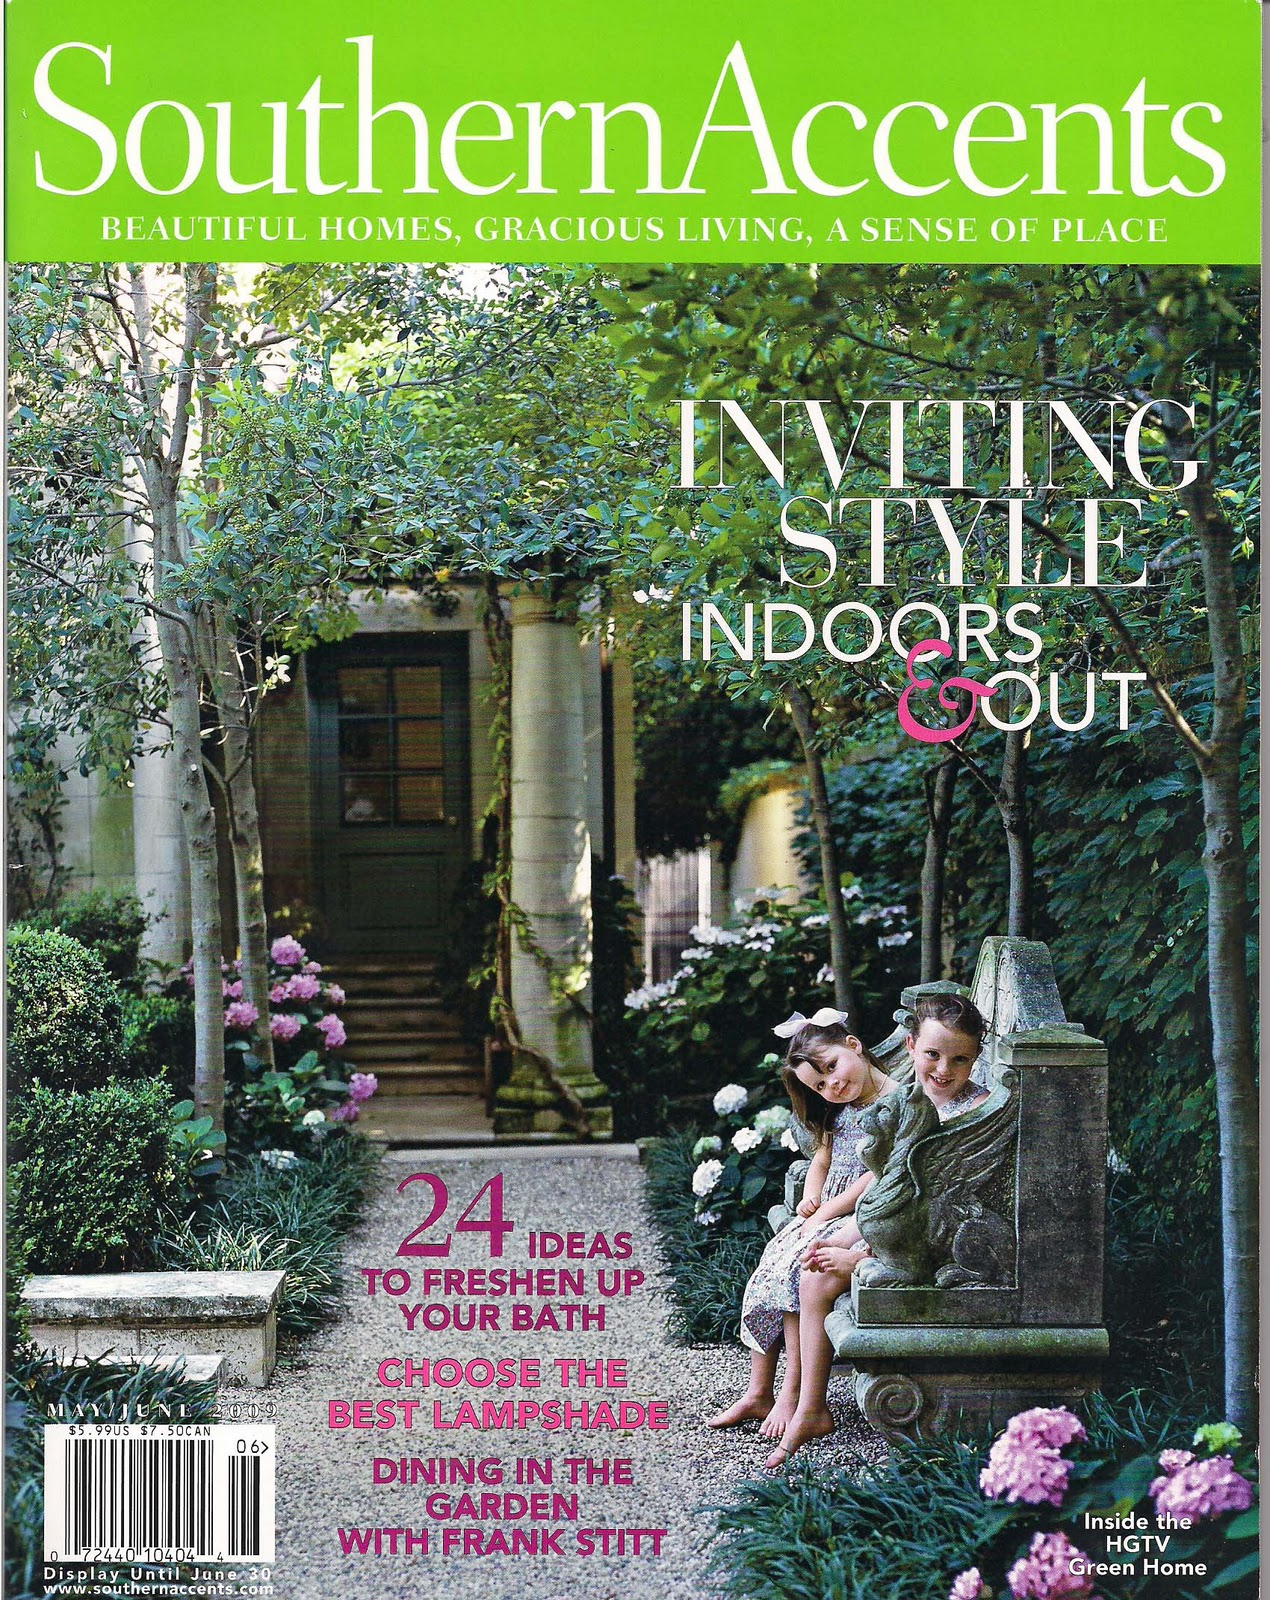 Southern Garden Design epic southern garden ideas for your fresh home interior design with southern garden ideas The Garden Of A John Tackett Design Project In Highland Park Dallas Was Featured On The Cover And In An Article In One Of The Last Monthly Issues Of The